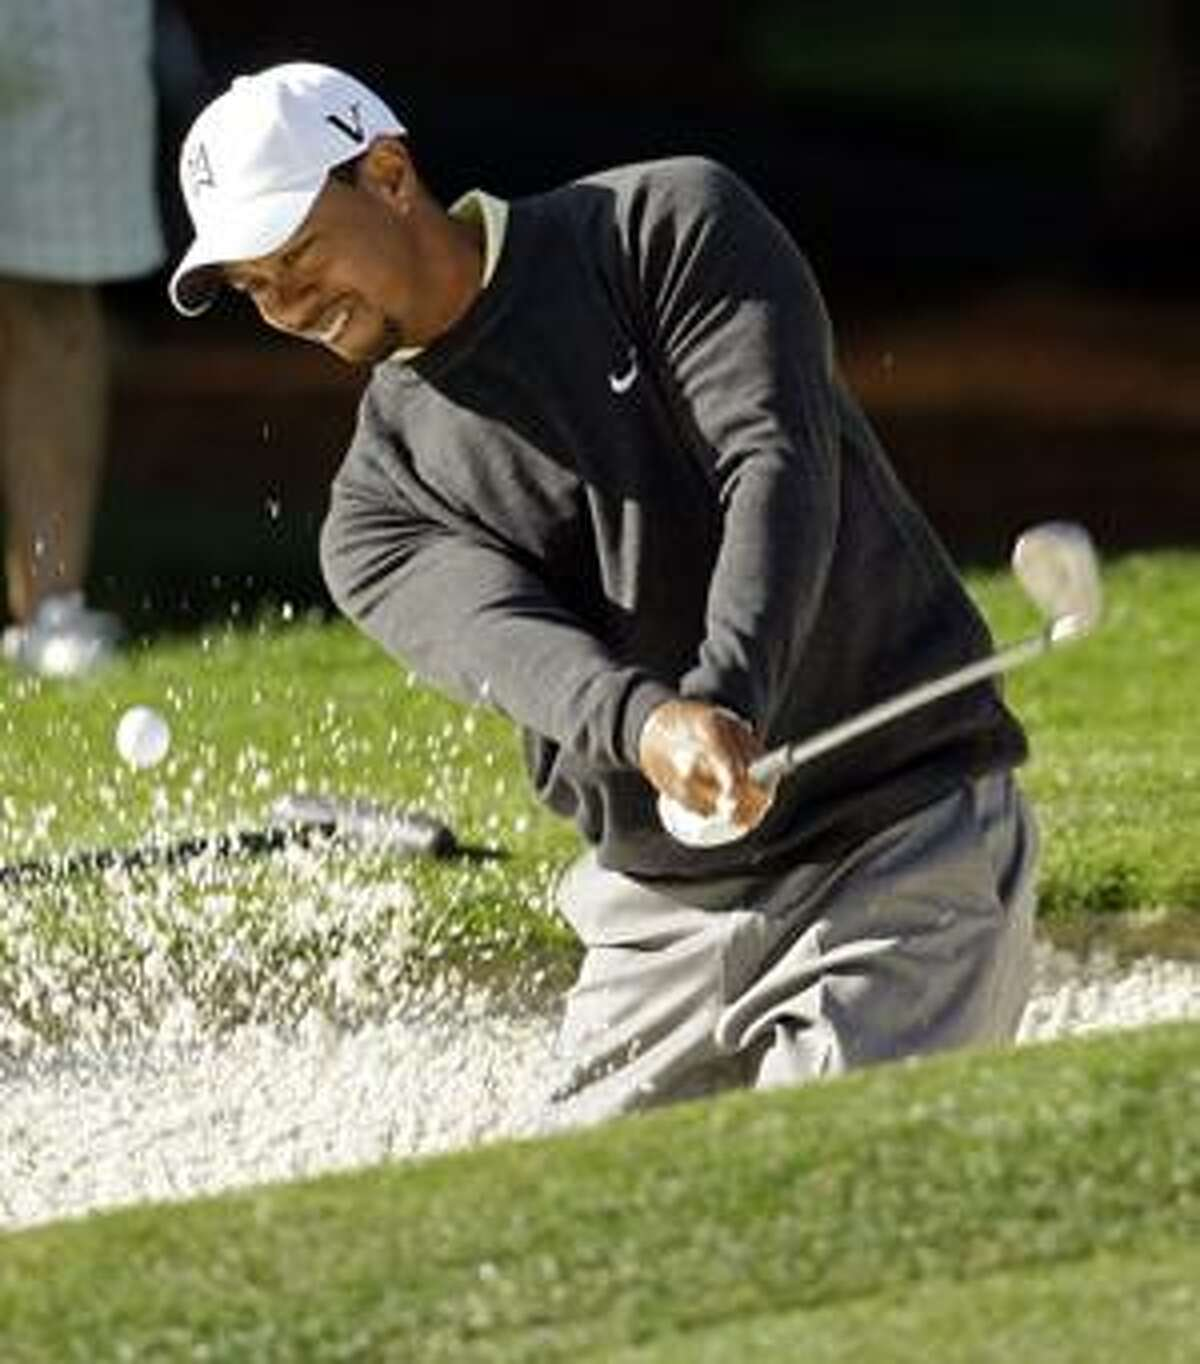 Tiger Woods hits from a sand trap on the sixth hole during the pro-am of the Quail Hollow Championship golf tournament at Quail Hollow Club in Charlotte, N.C., Wednesday, April 28, 2010. (AP Photo/Chuck Burton)